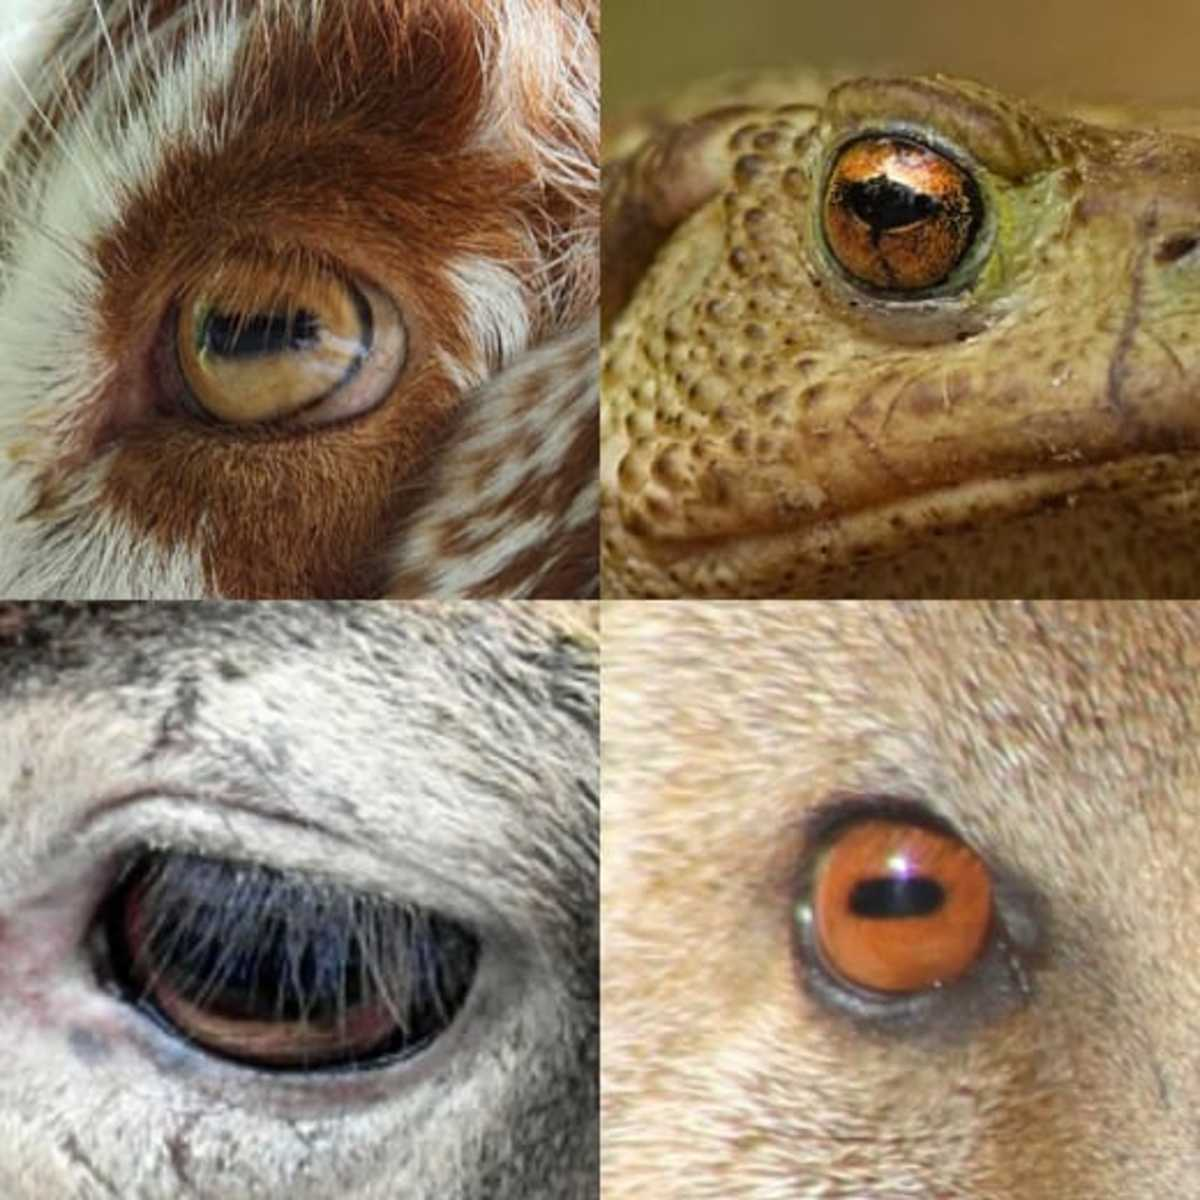 This photo shows the horizontal pupils of a goat, a toad, a deer, and a mongoose.